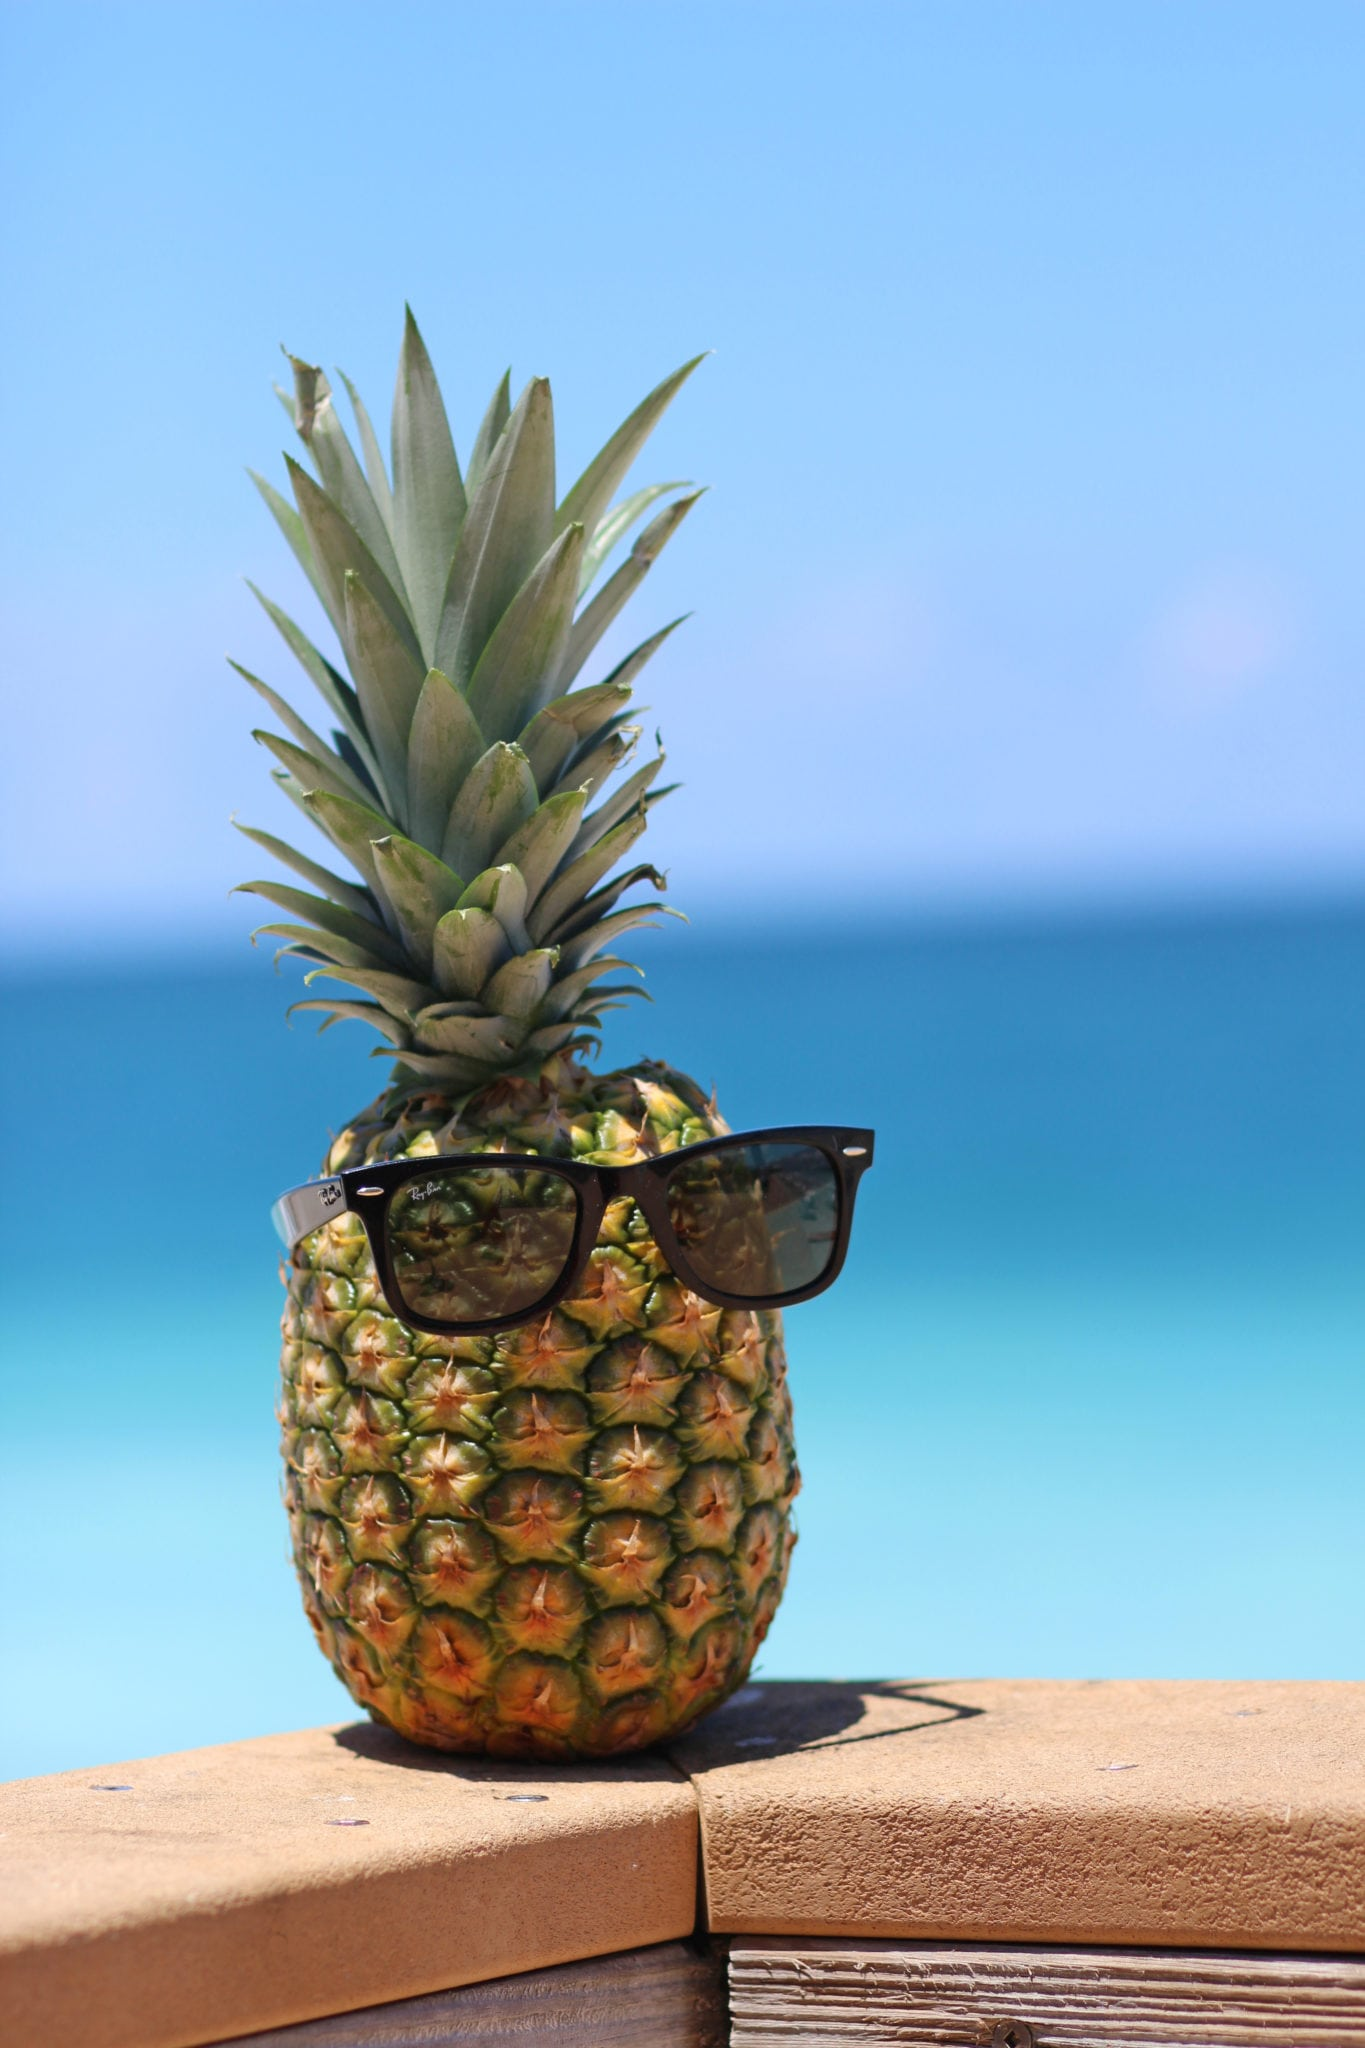 pineapple-at-the-beach-in-sunglasses